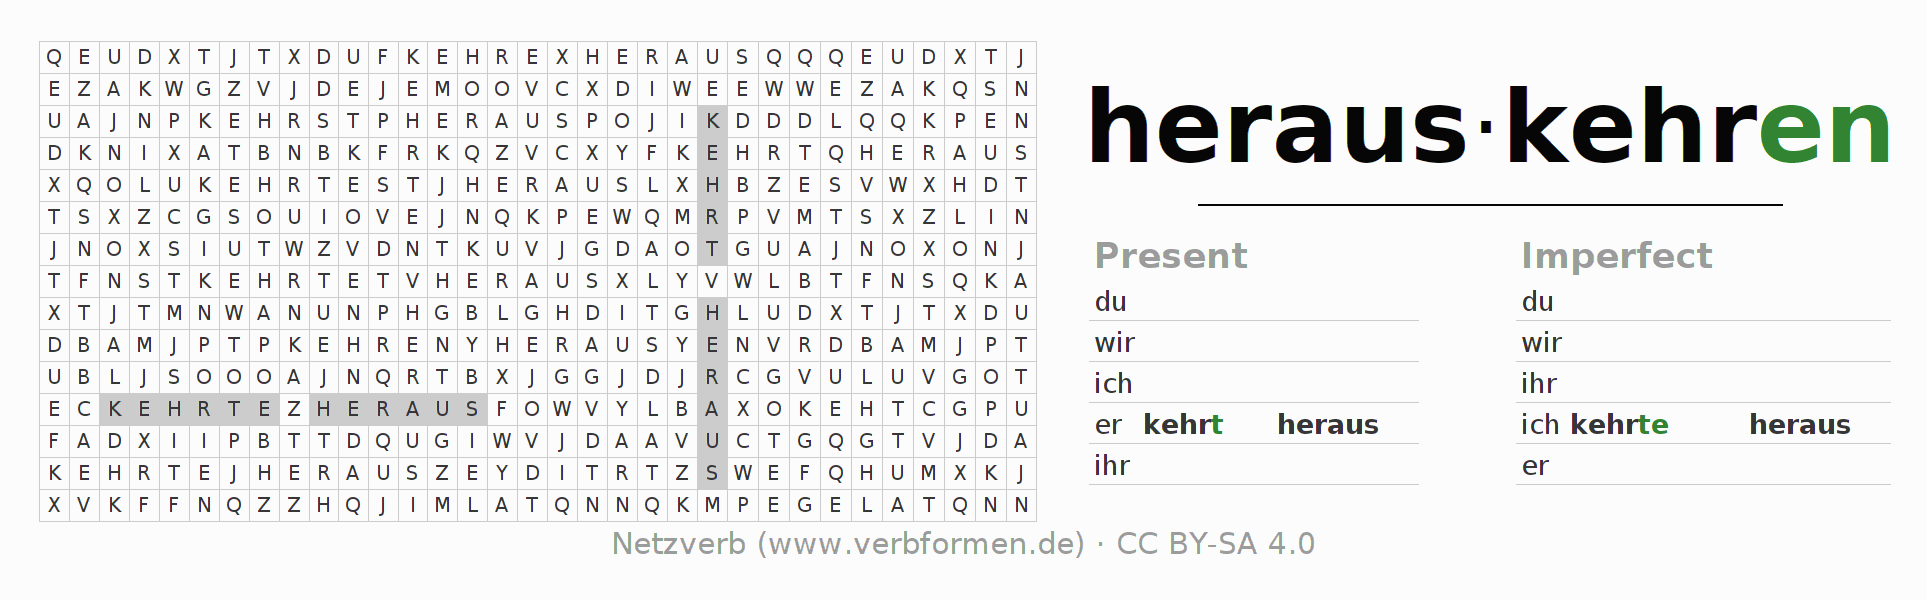 Word search puzzle for the conjugation of the verb herauskehren